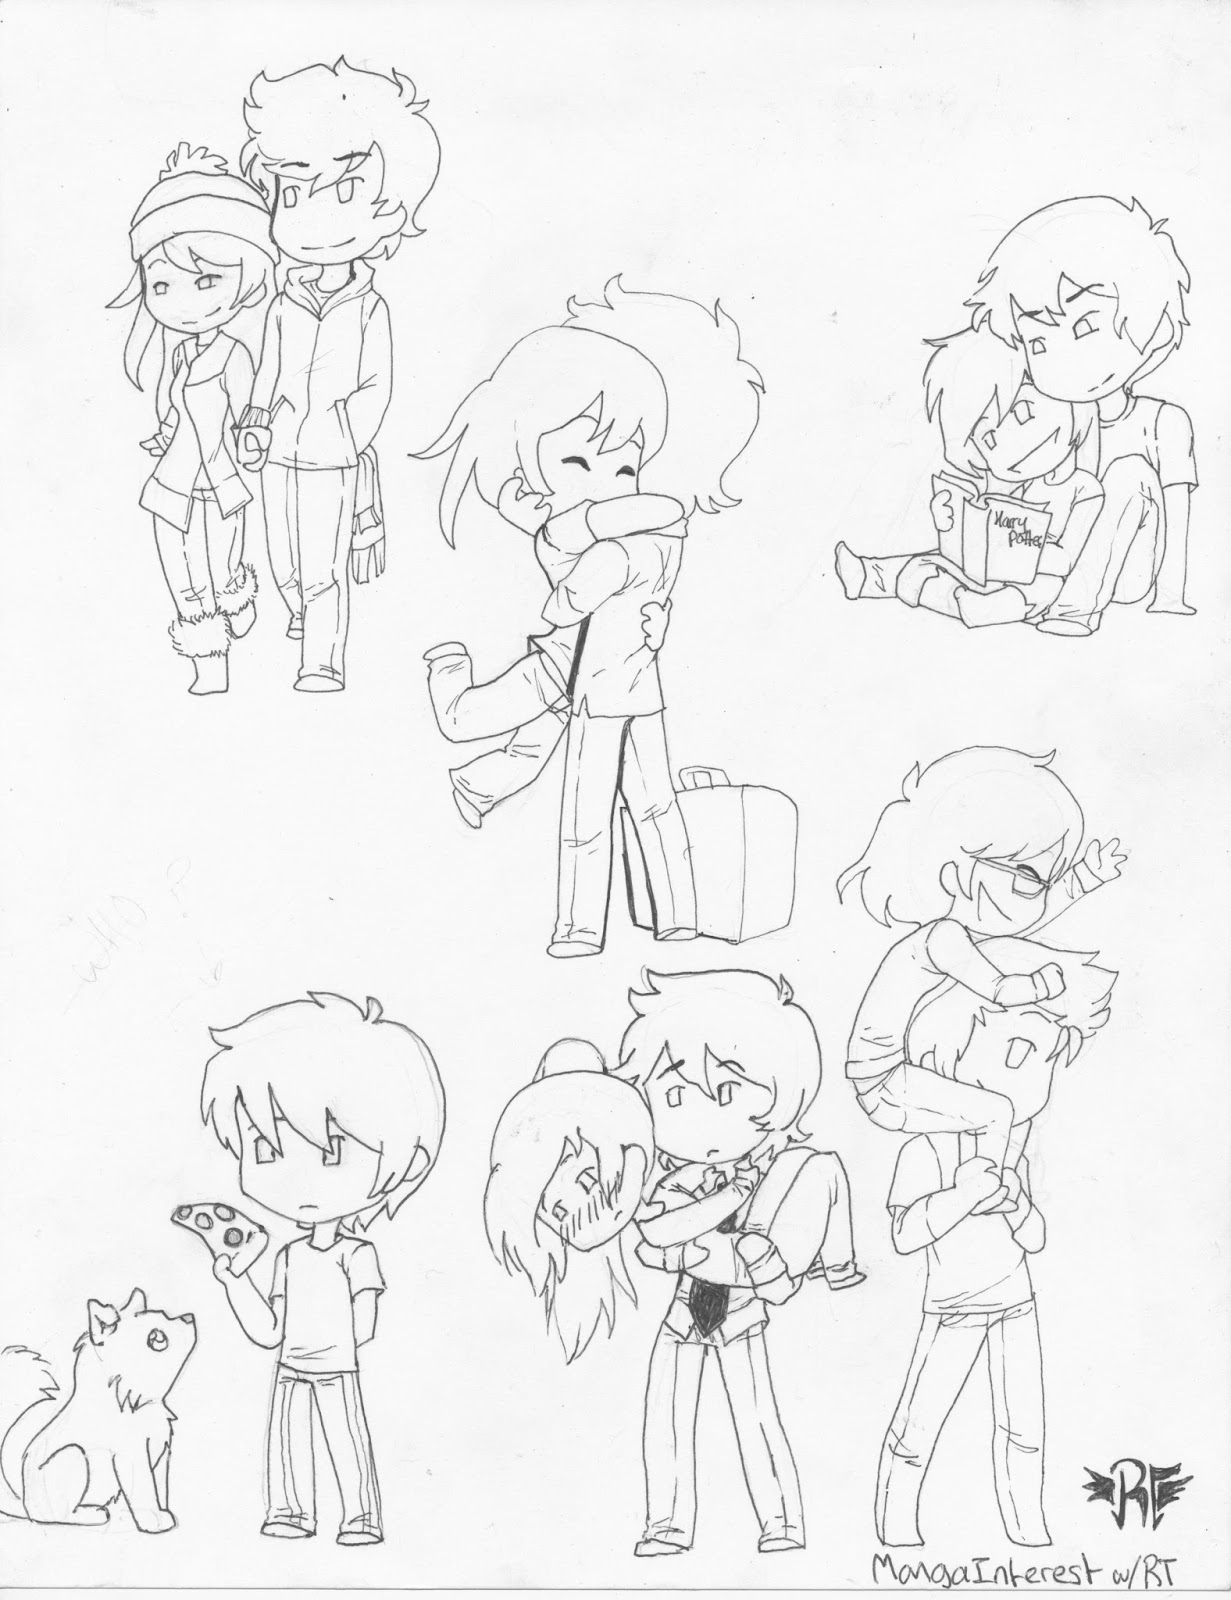 Heres a sheet i drew of some of my favorite couple poses just reverting some older drawings into chibi couples instead of manga ones